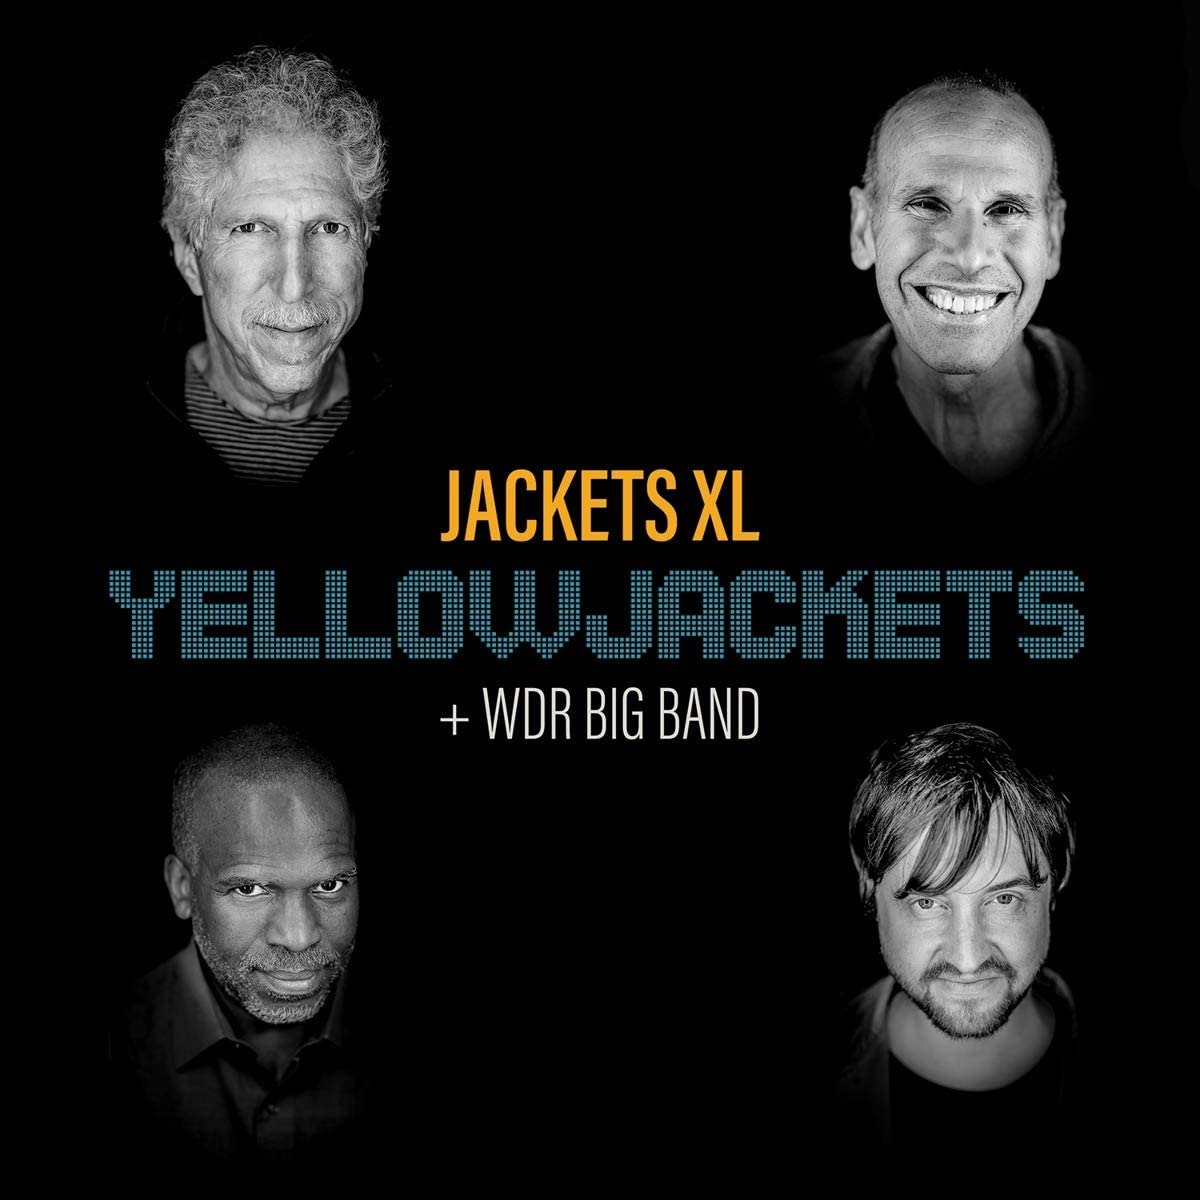 yellowjackets xl